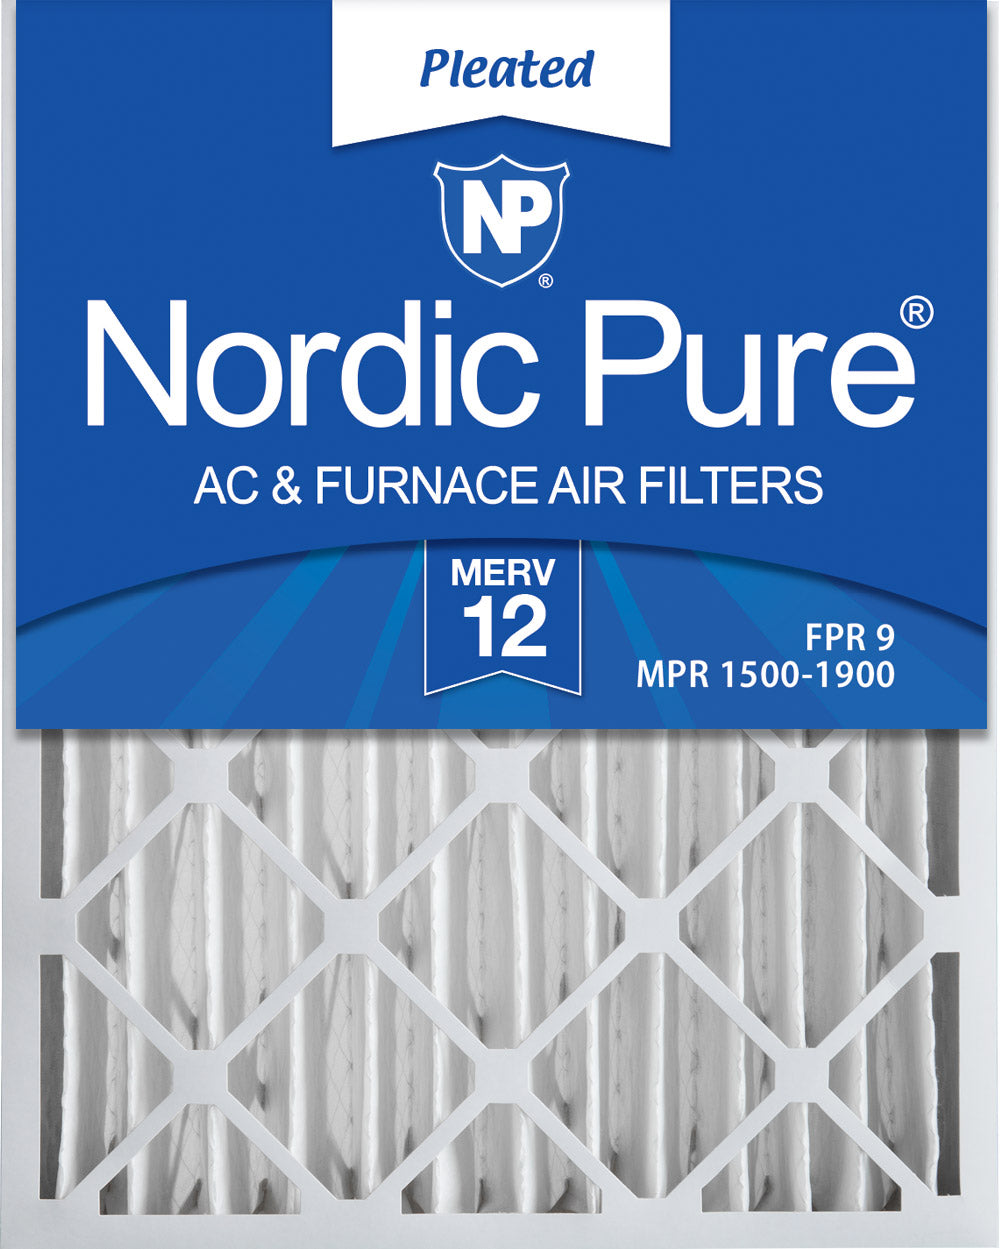 20x25x4 (3 5/8) Pleated MERV 12 Air Filters 2 Pack